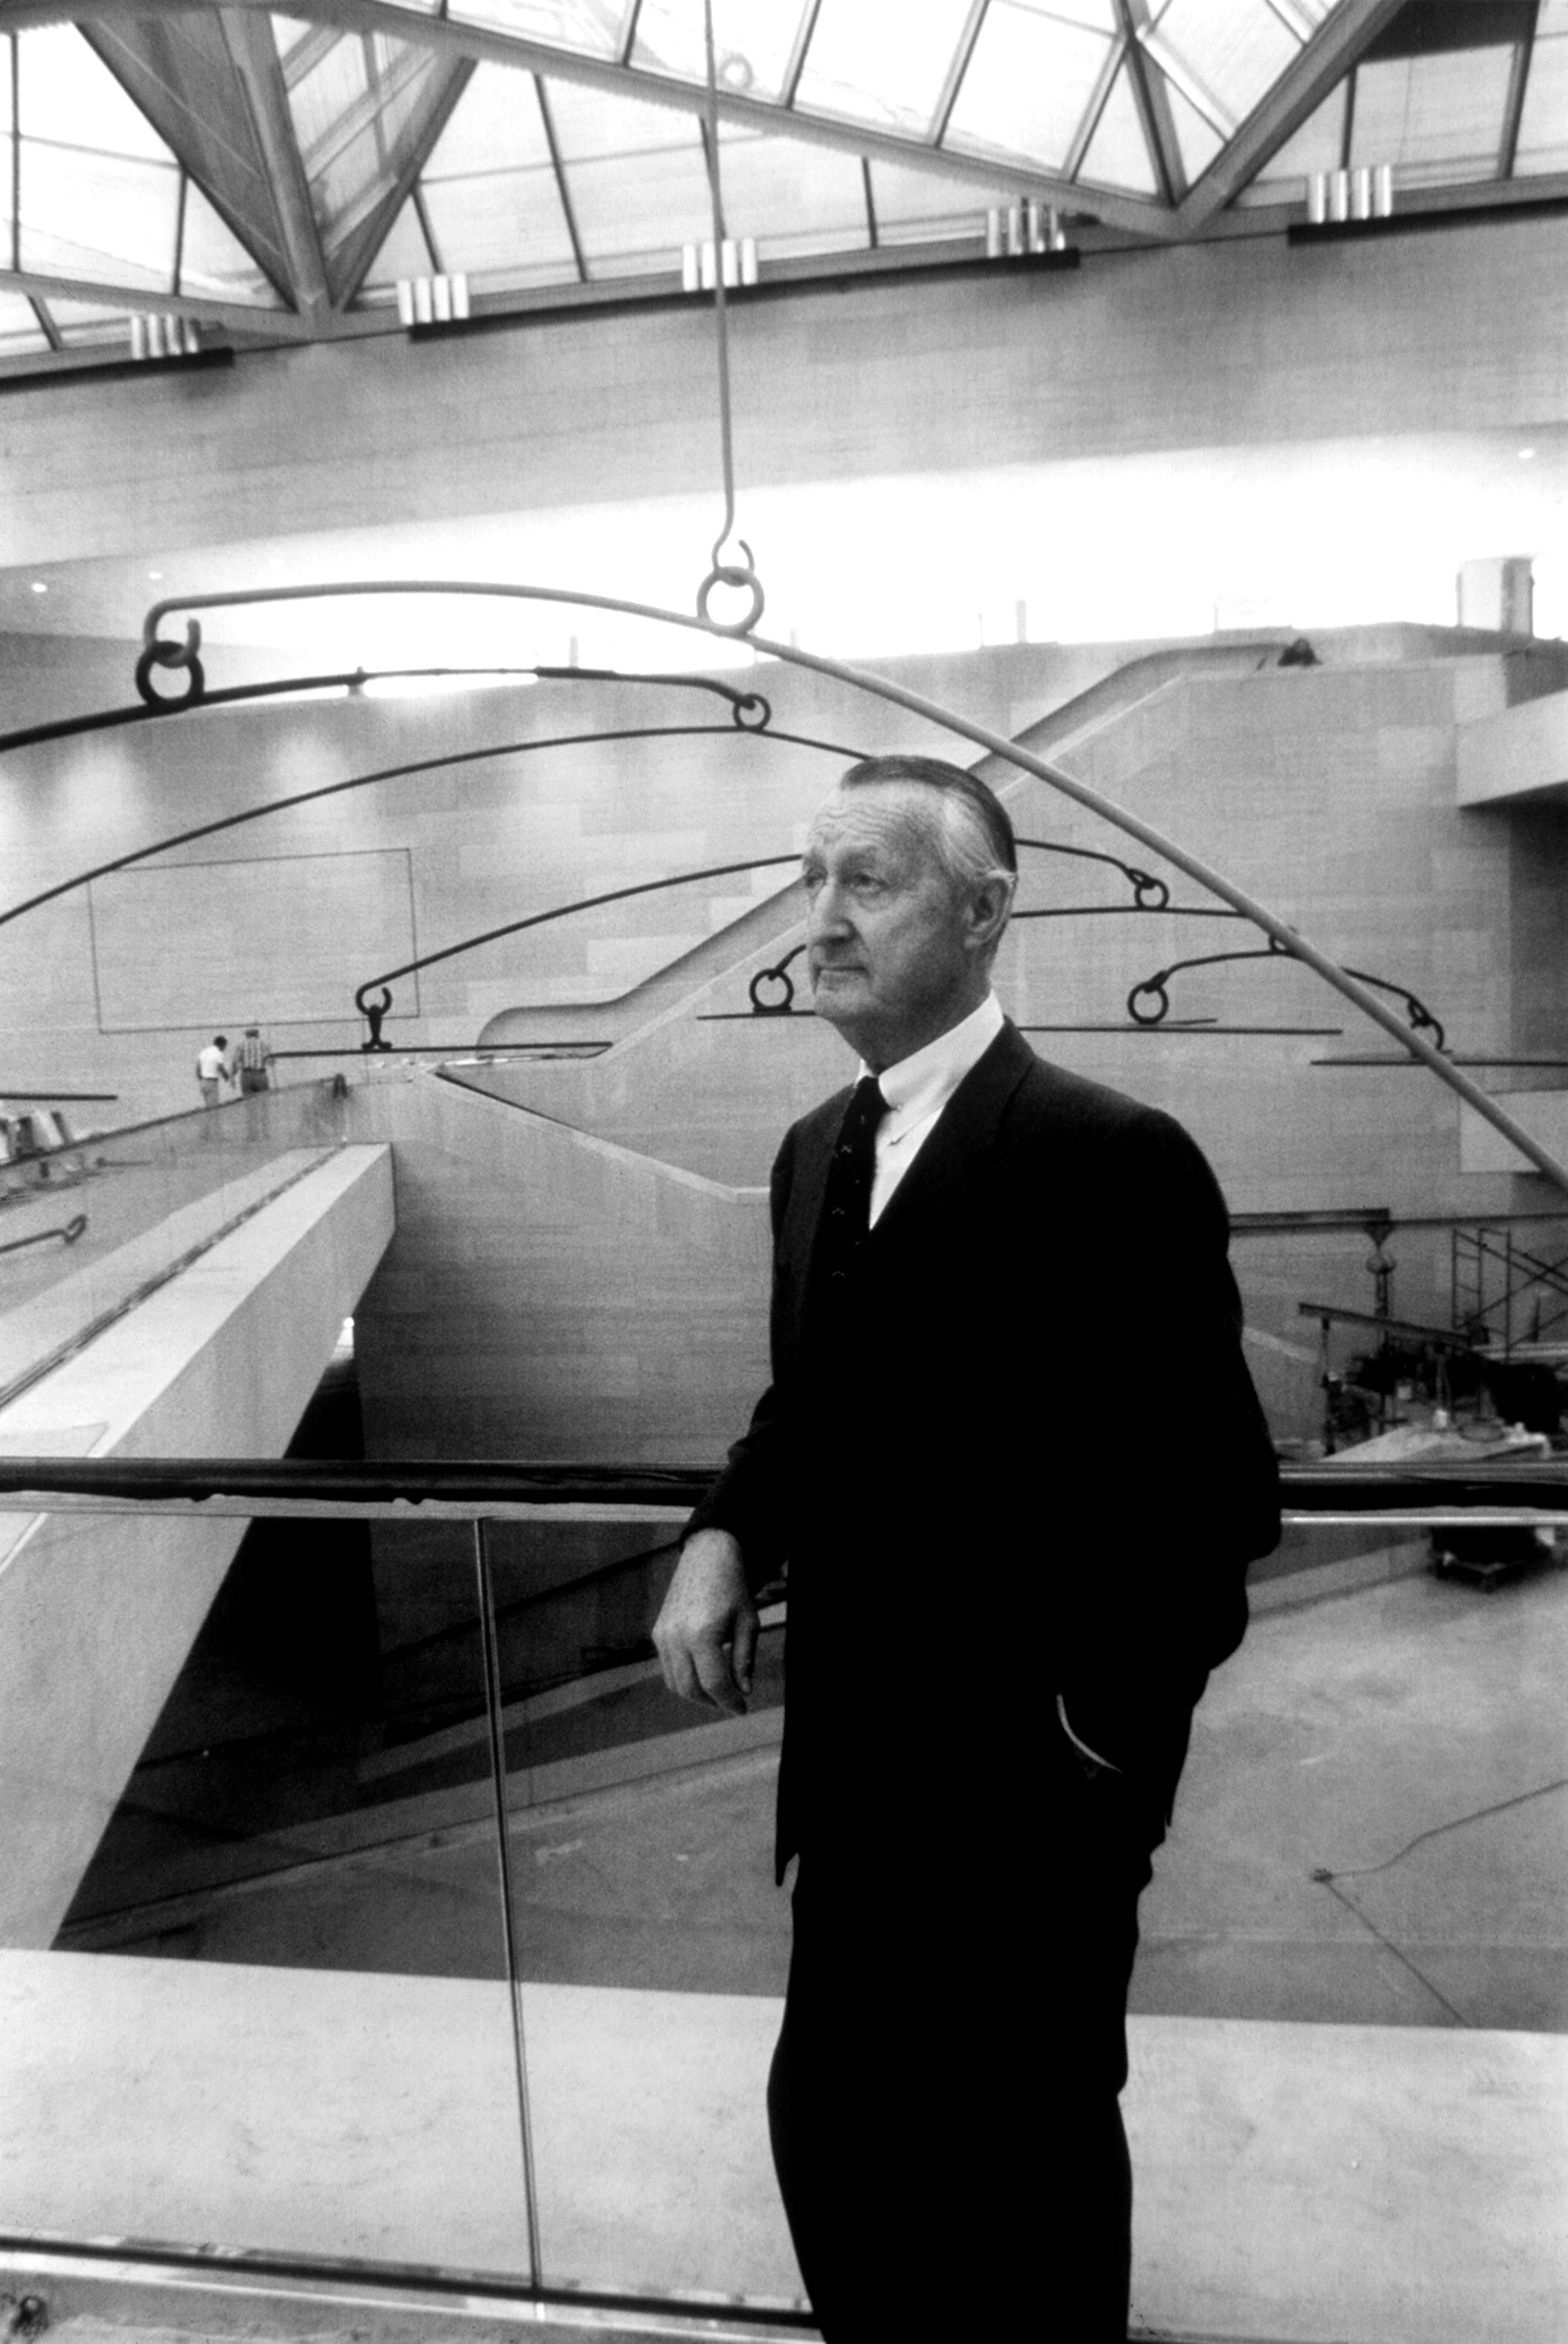 Paul Mellon on the East Building Mezzanine in front of Alexander Calder's Untitled (1976). © Dennis Brack/Black Star. Courtesy of the National Gallery of Art, Washington